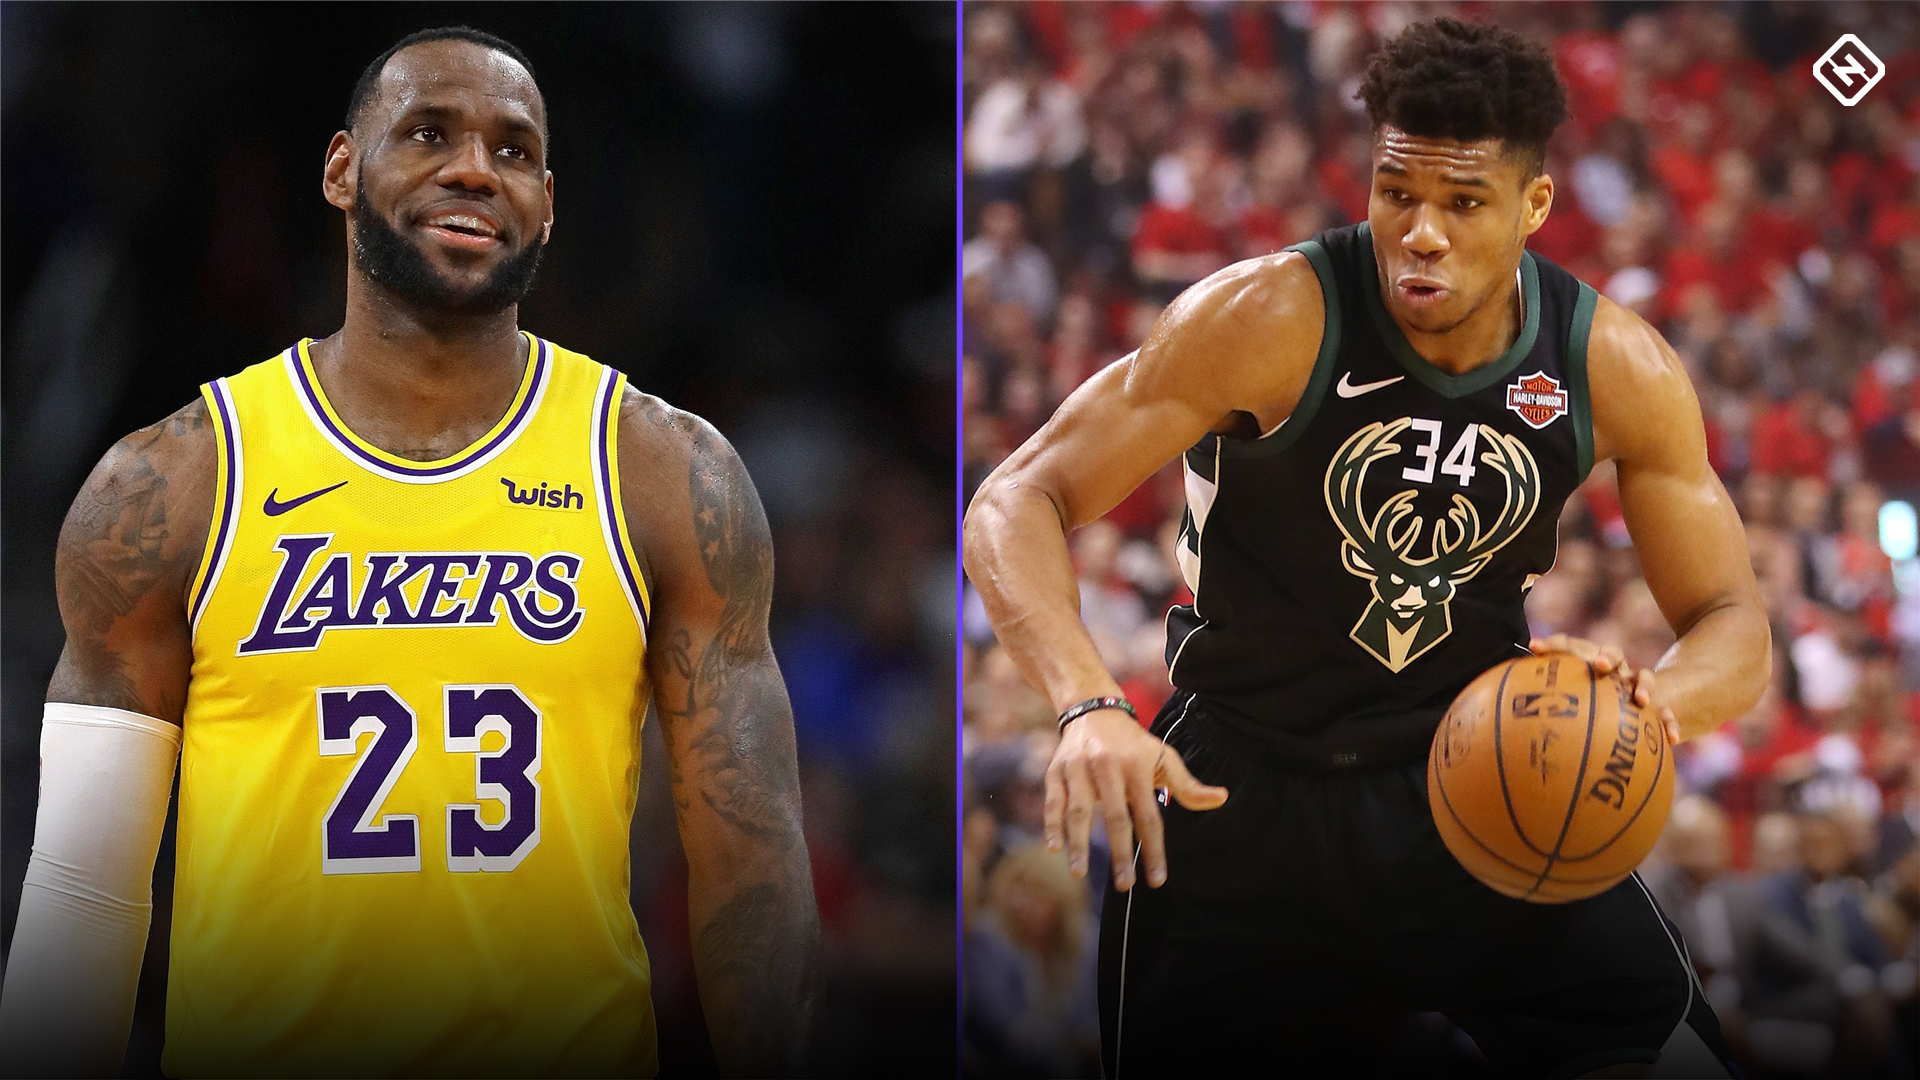 Nba Championship Odds 2020 Lakers Bucks Lead Pack After